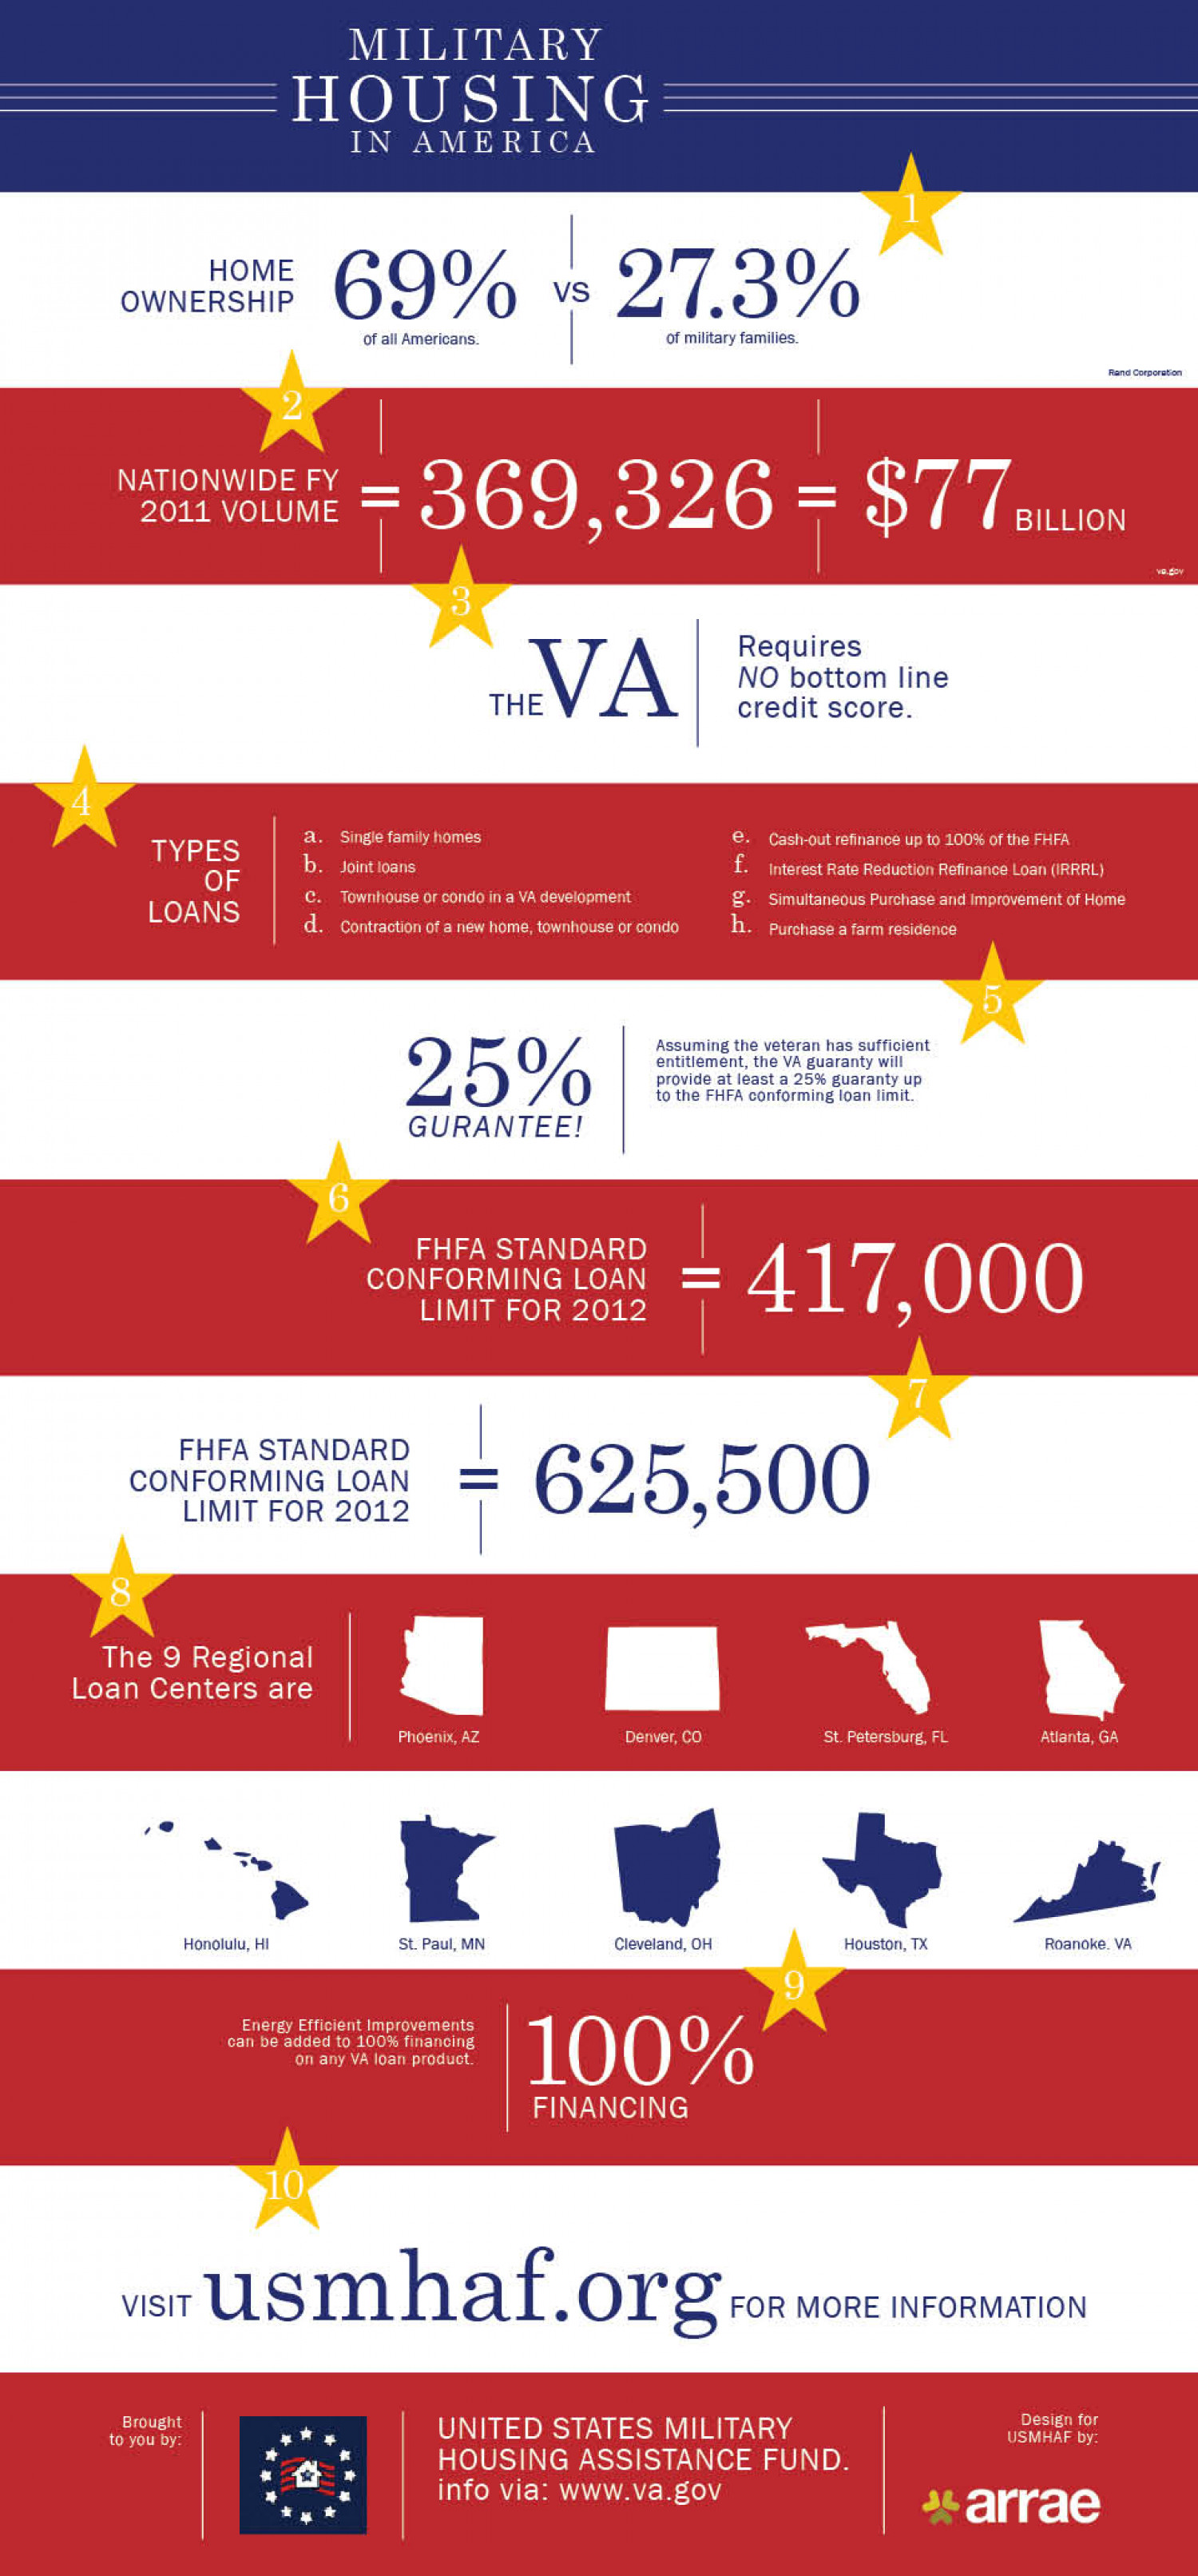 Military Housing in America Infographic